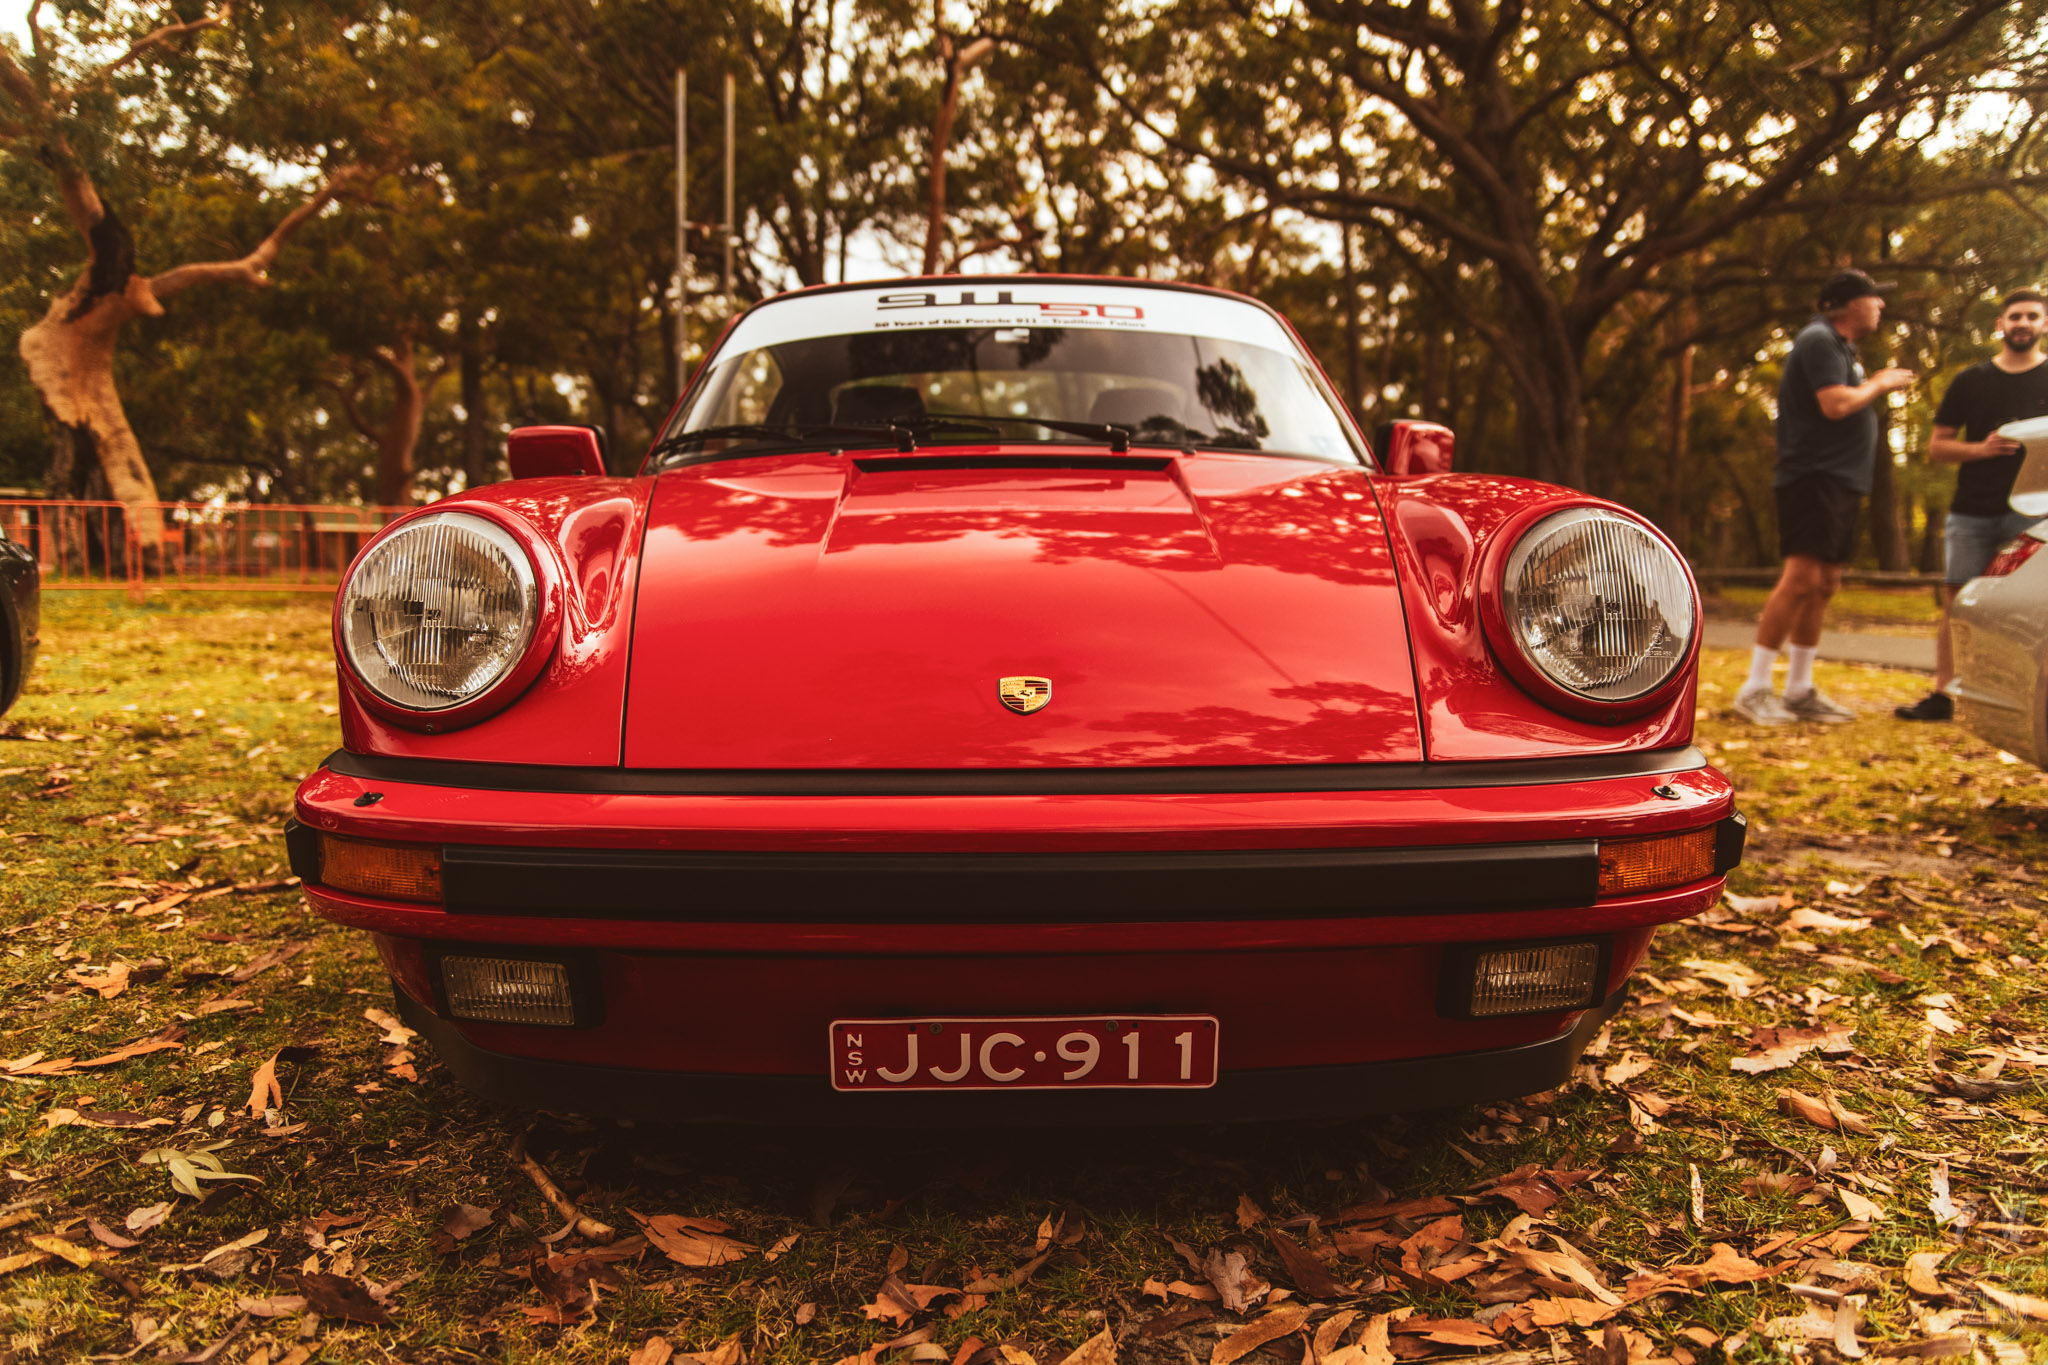 2019-12-08 - Porsches & Coffee 025